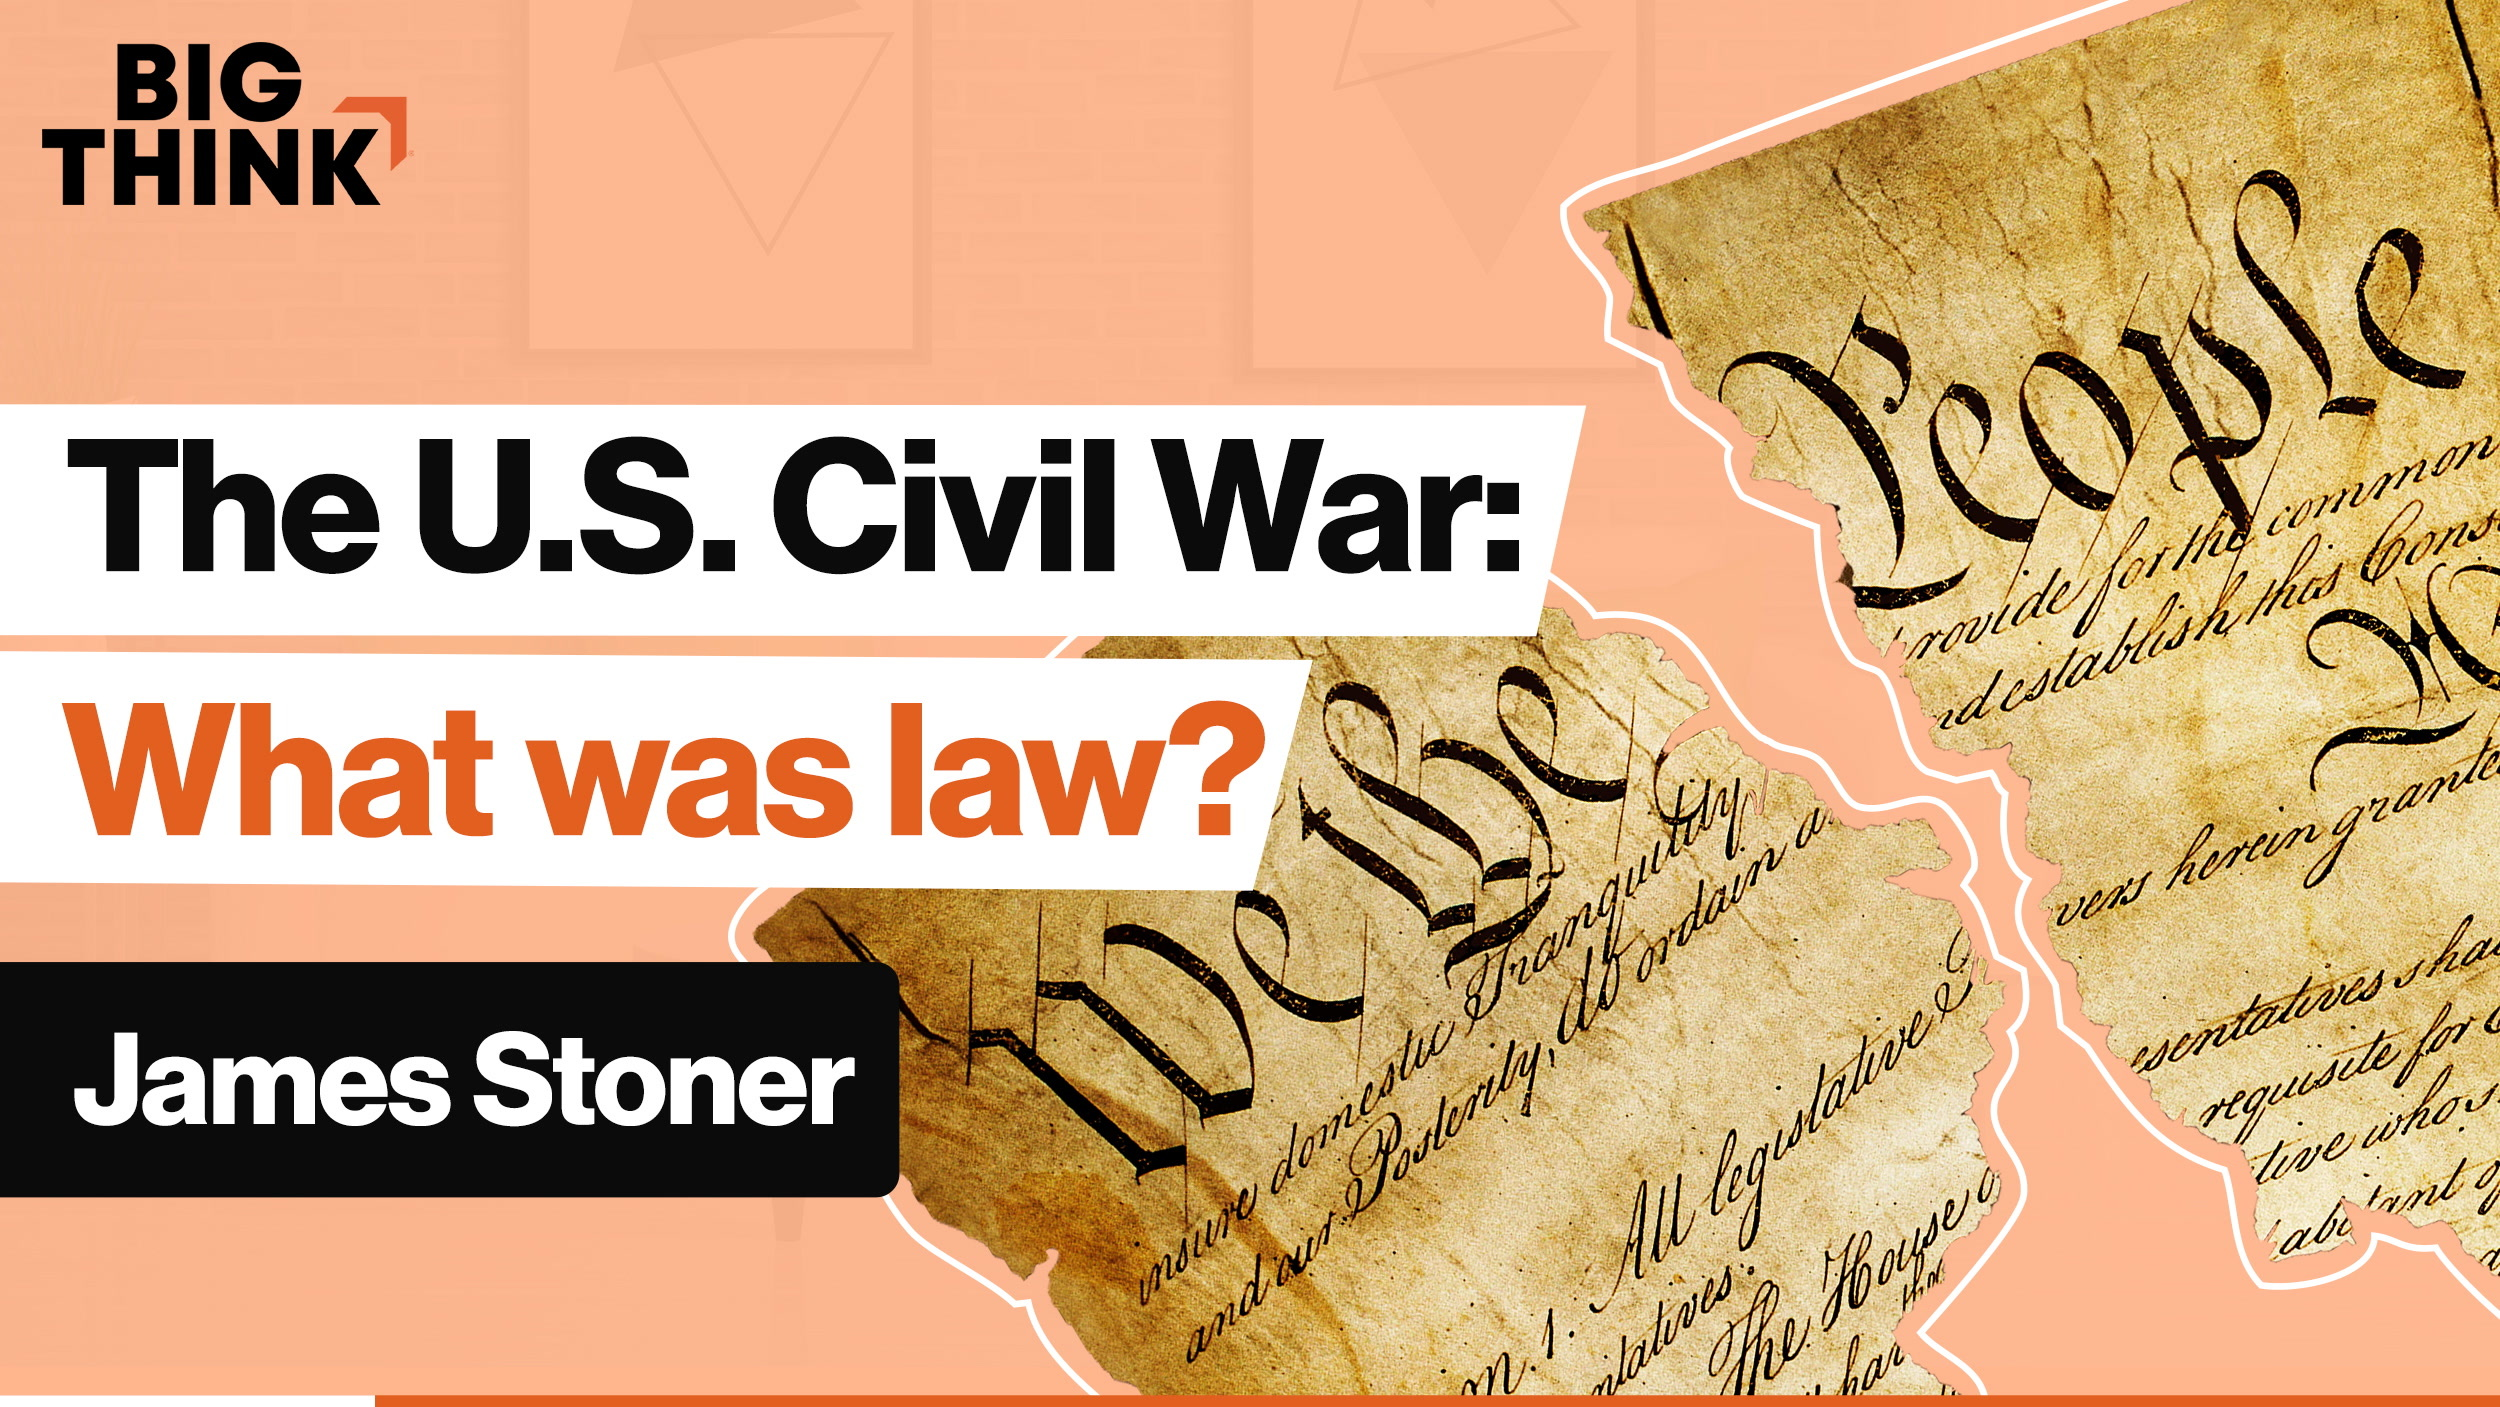 Lincoln's law: How did the Civil War change the Constitution?